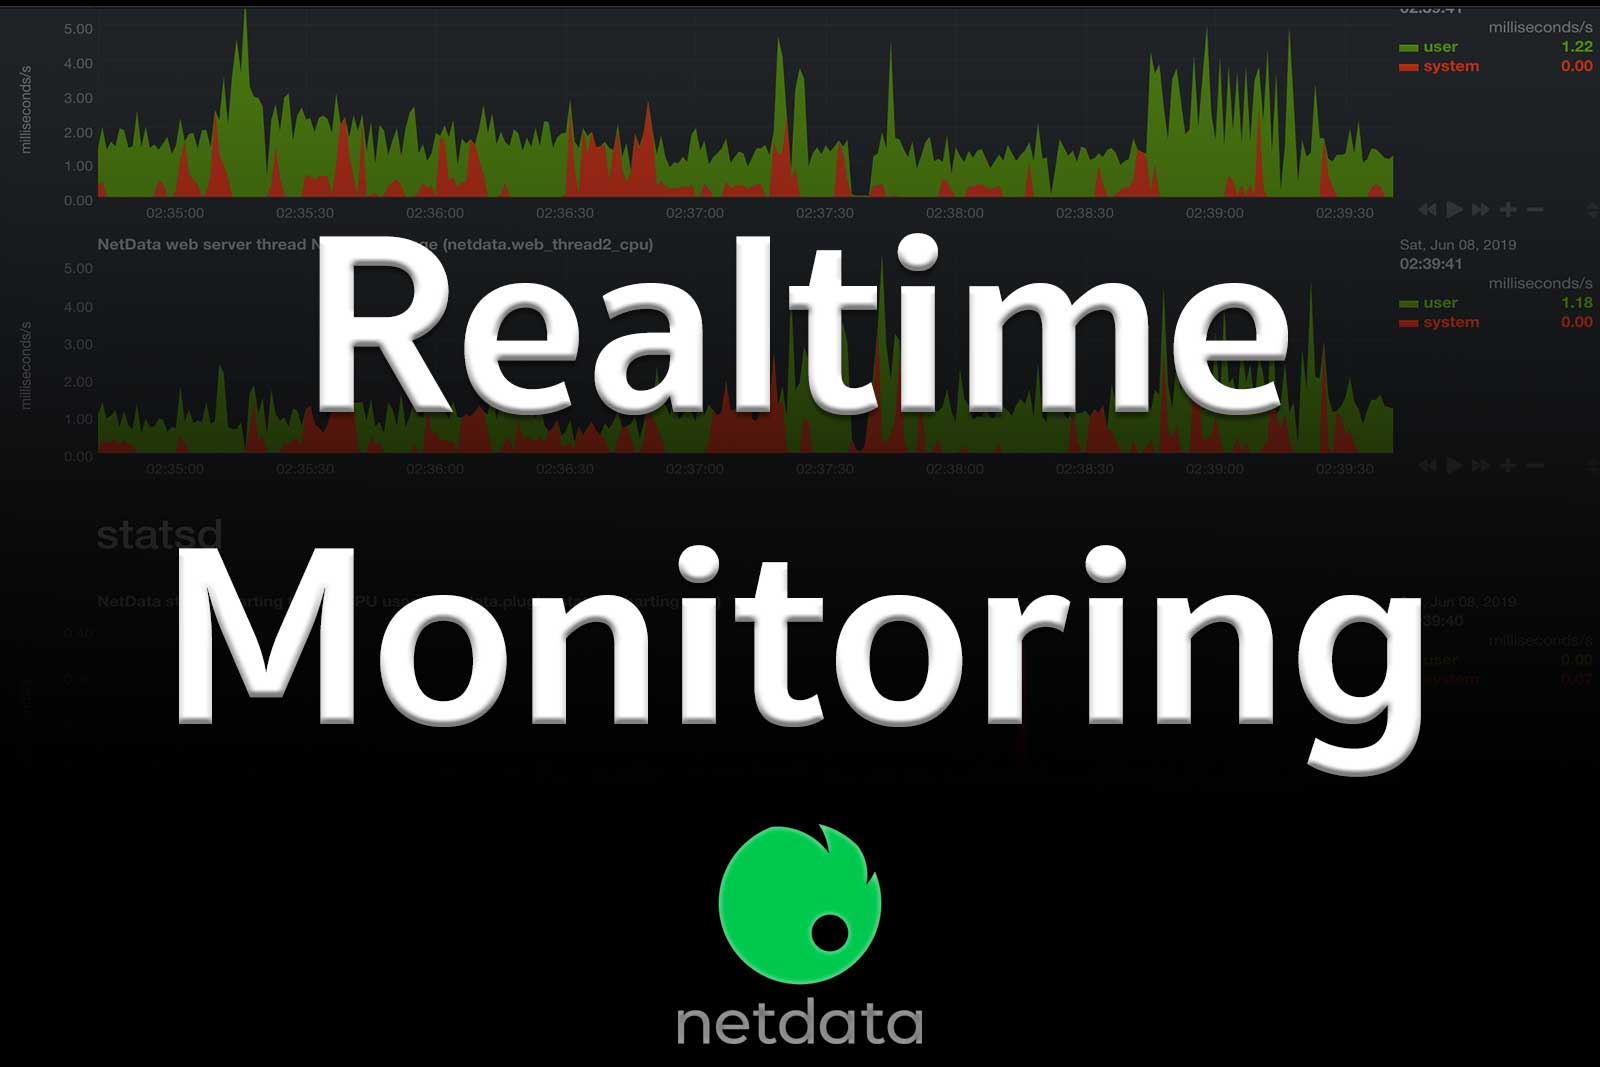 netdata - realtime monitoring